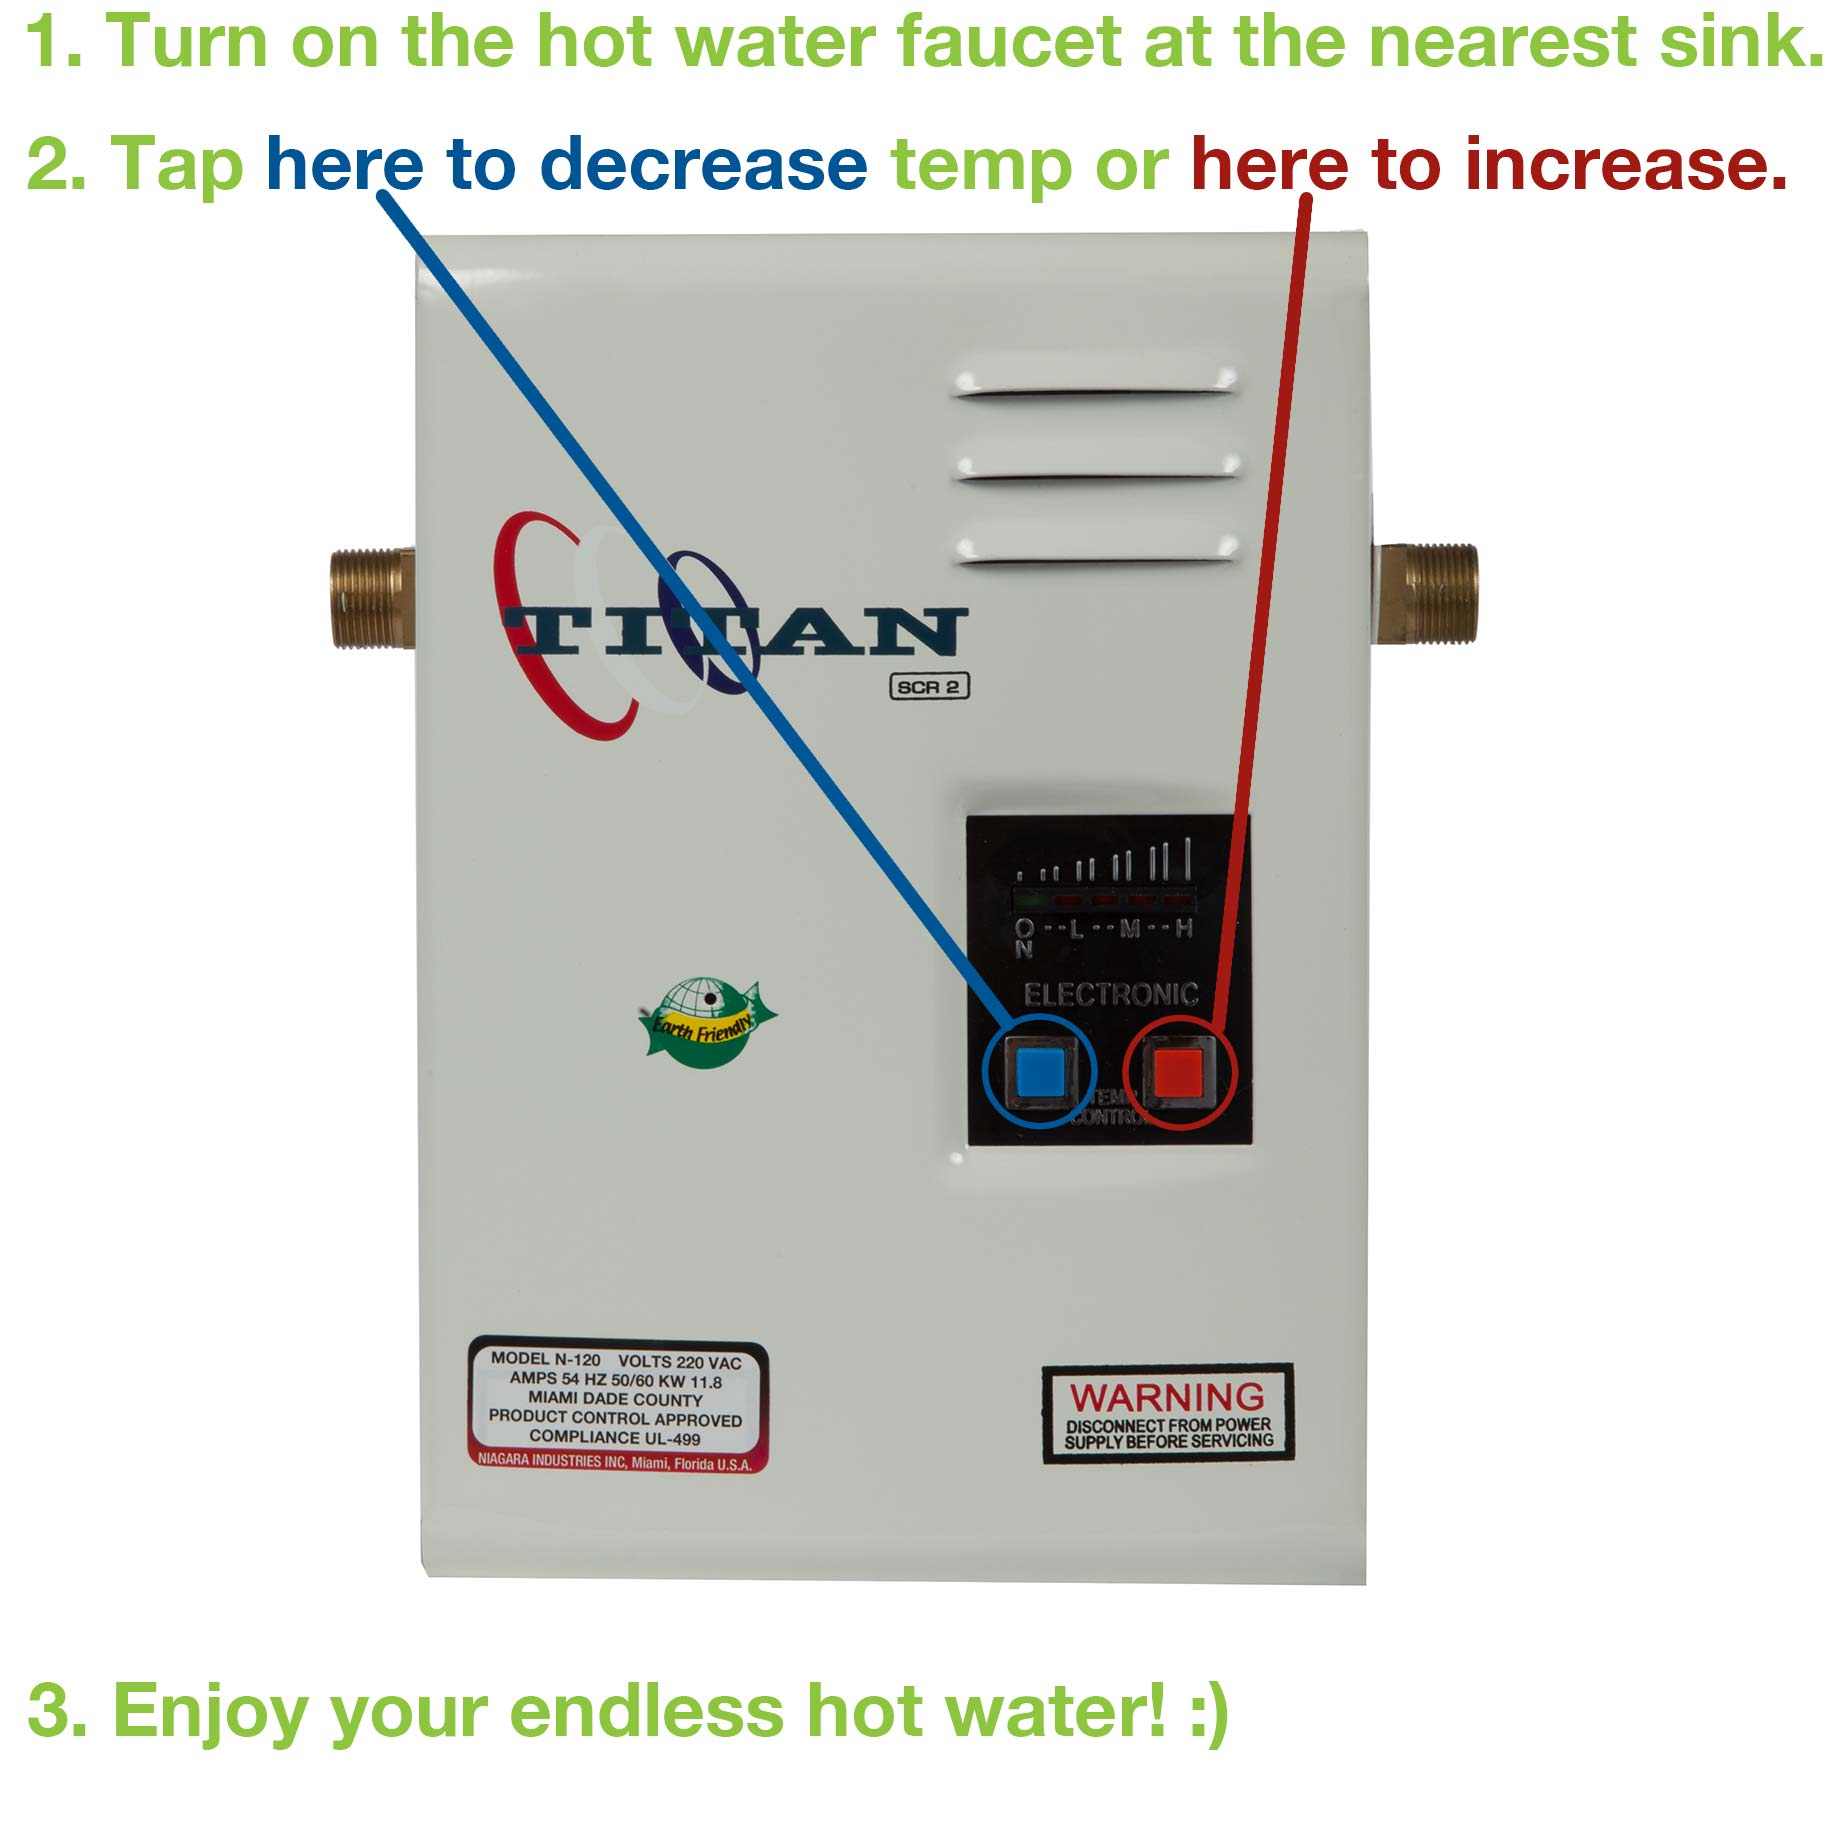 How to adjust Titan: 1. Turn on hot faucet. 2. Press blue button for down, red button for up. 3. Enjoy endless hot water.